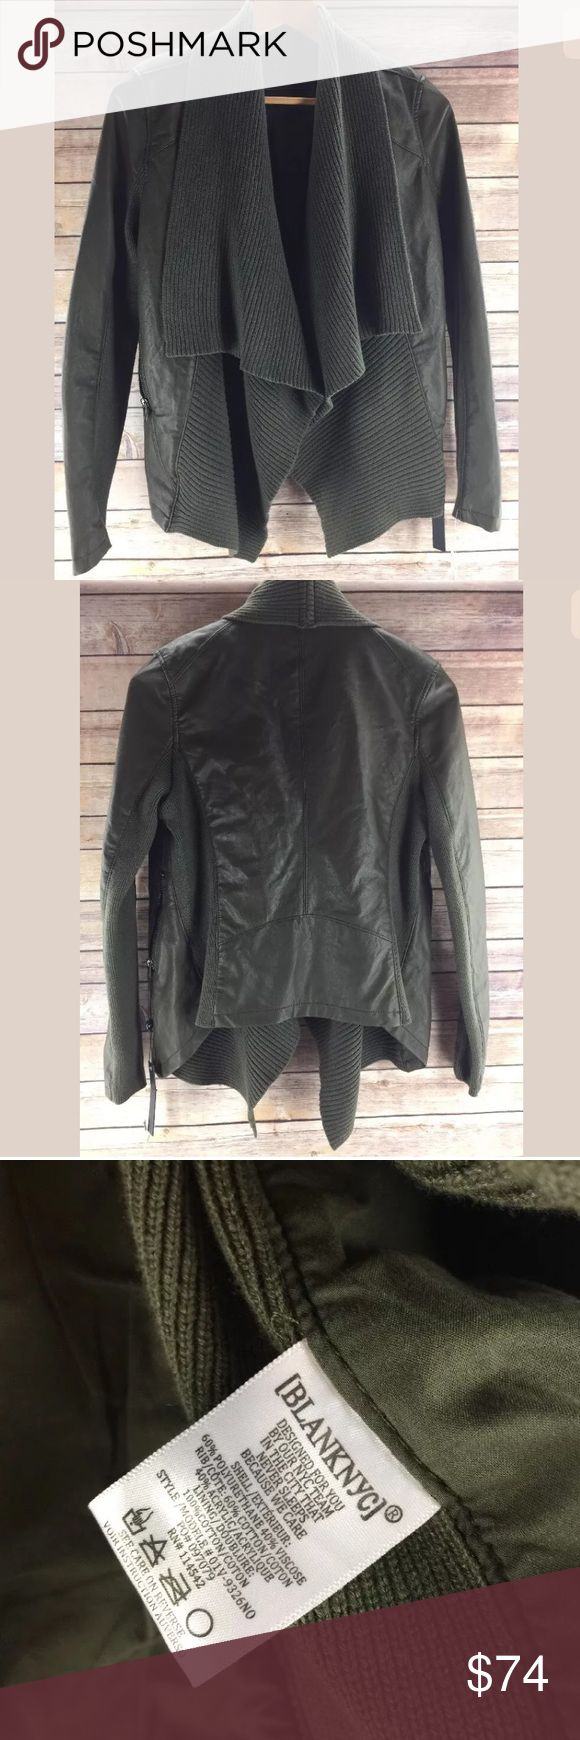 Blank NYC Faux Leather Jacket Green Draped Size S Blank NYC Faux Vegan Leather Jacket Army Green Draped Front Size S third photo shows color best from my device. It's a nice army green. Blank NYC Jackets & Coats